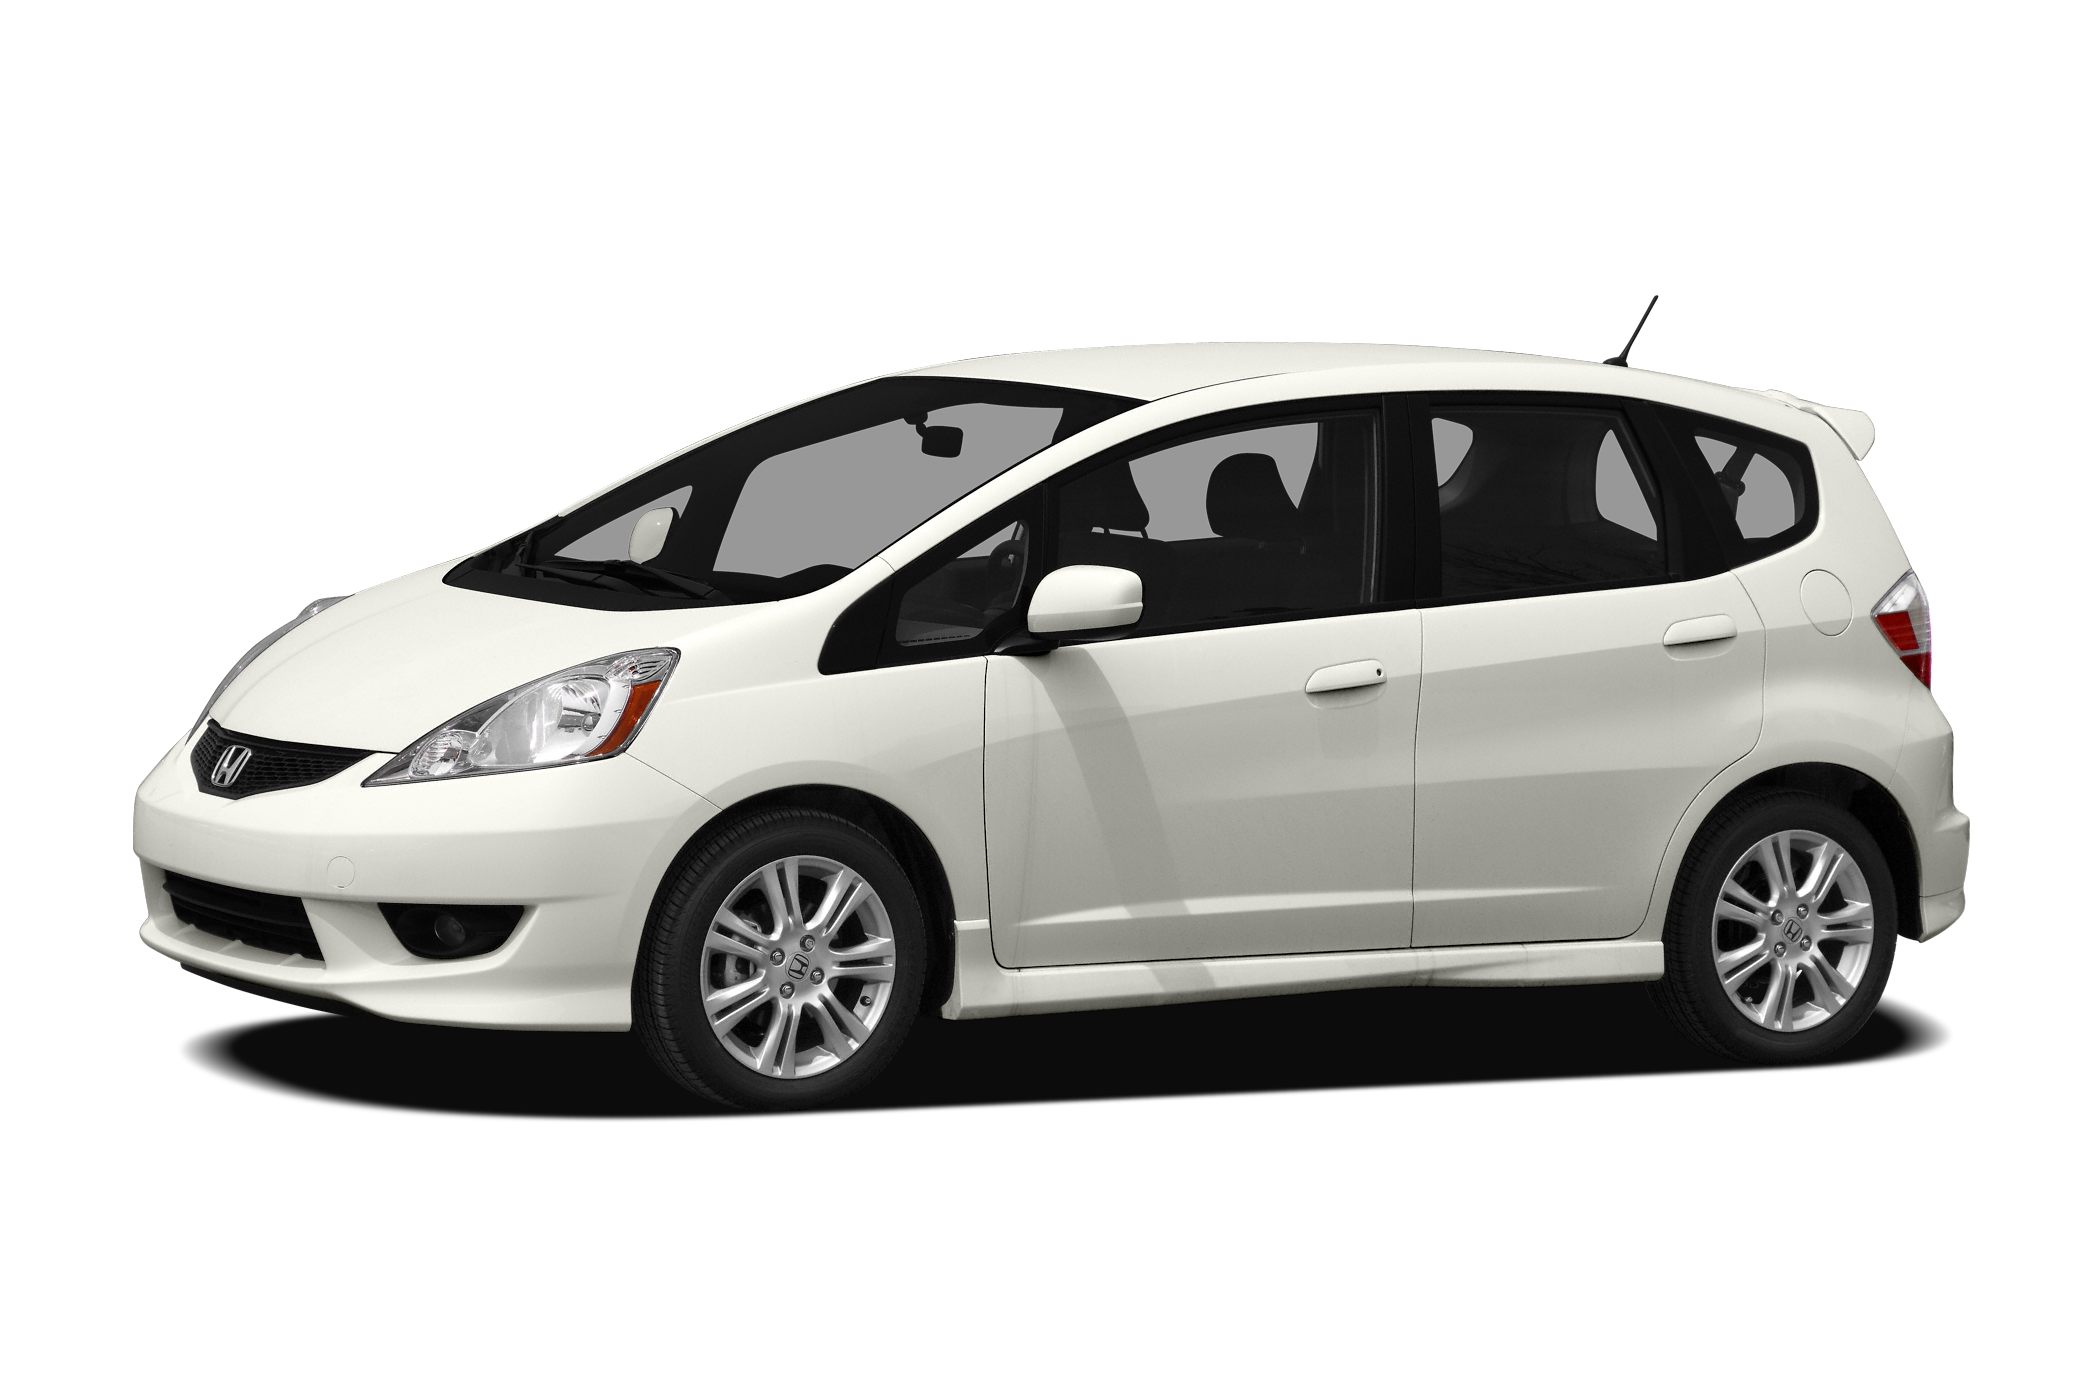 2011 Honda Fit Sport EPA 33 MPG Hwy27 MPG City CARFAX 1-Owner ONLY 41379 Miles Sport trim iP